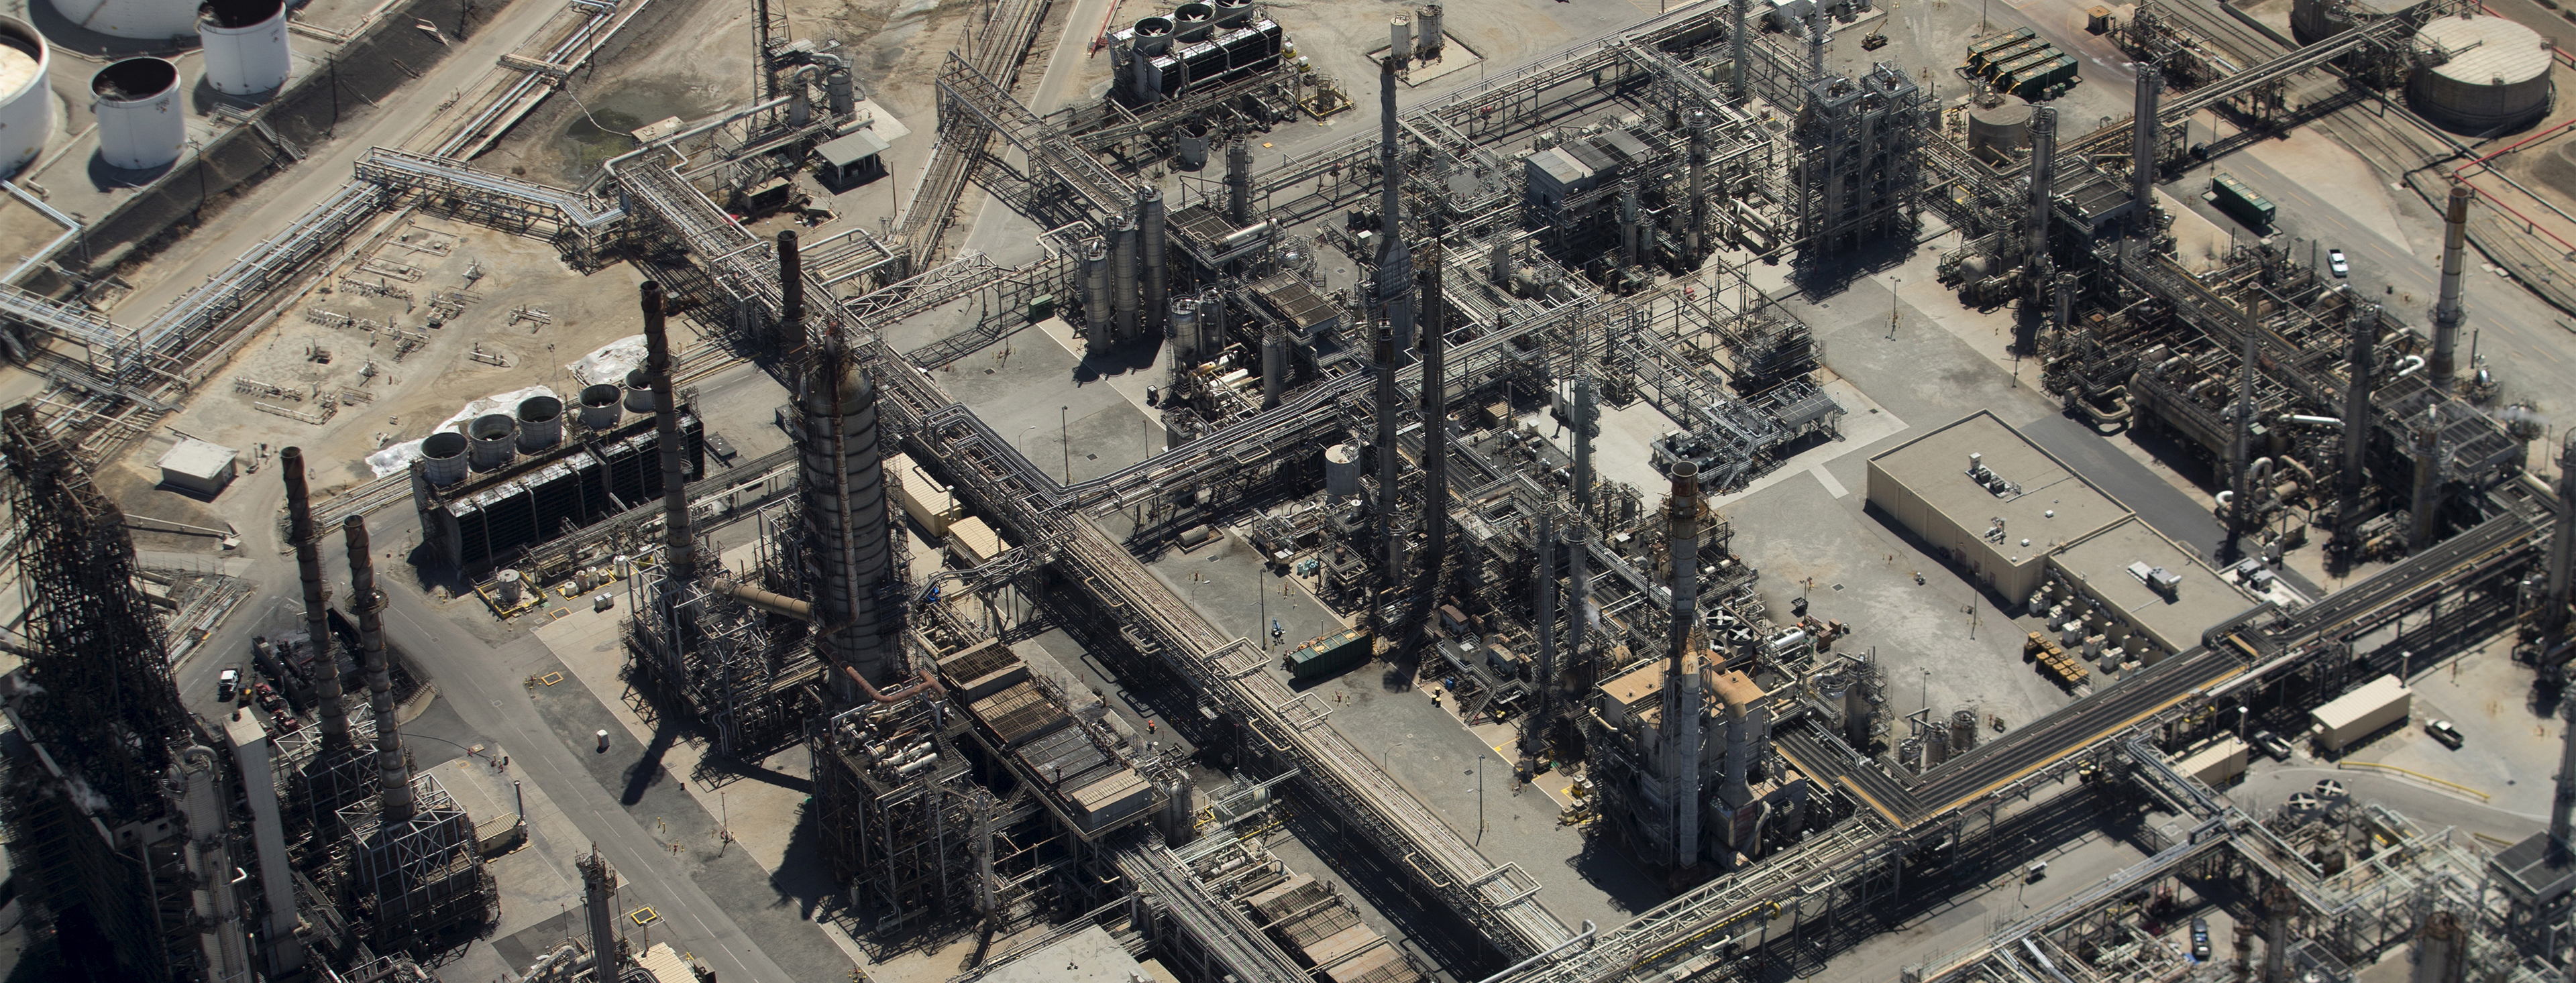 The Tesoro oil refinery is viewed from the air in Carson, California